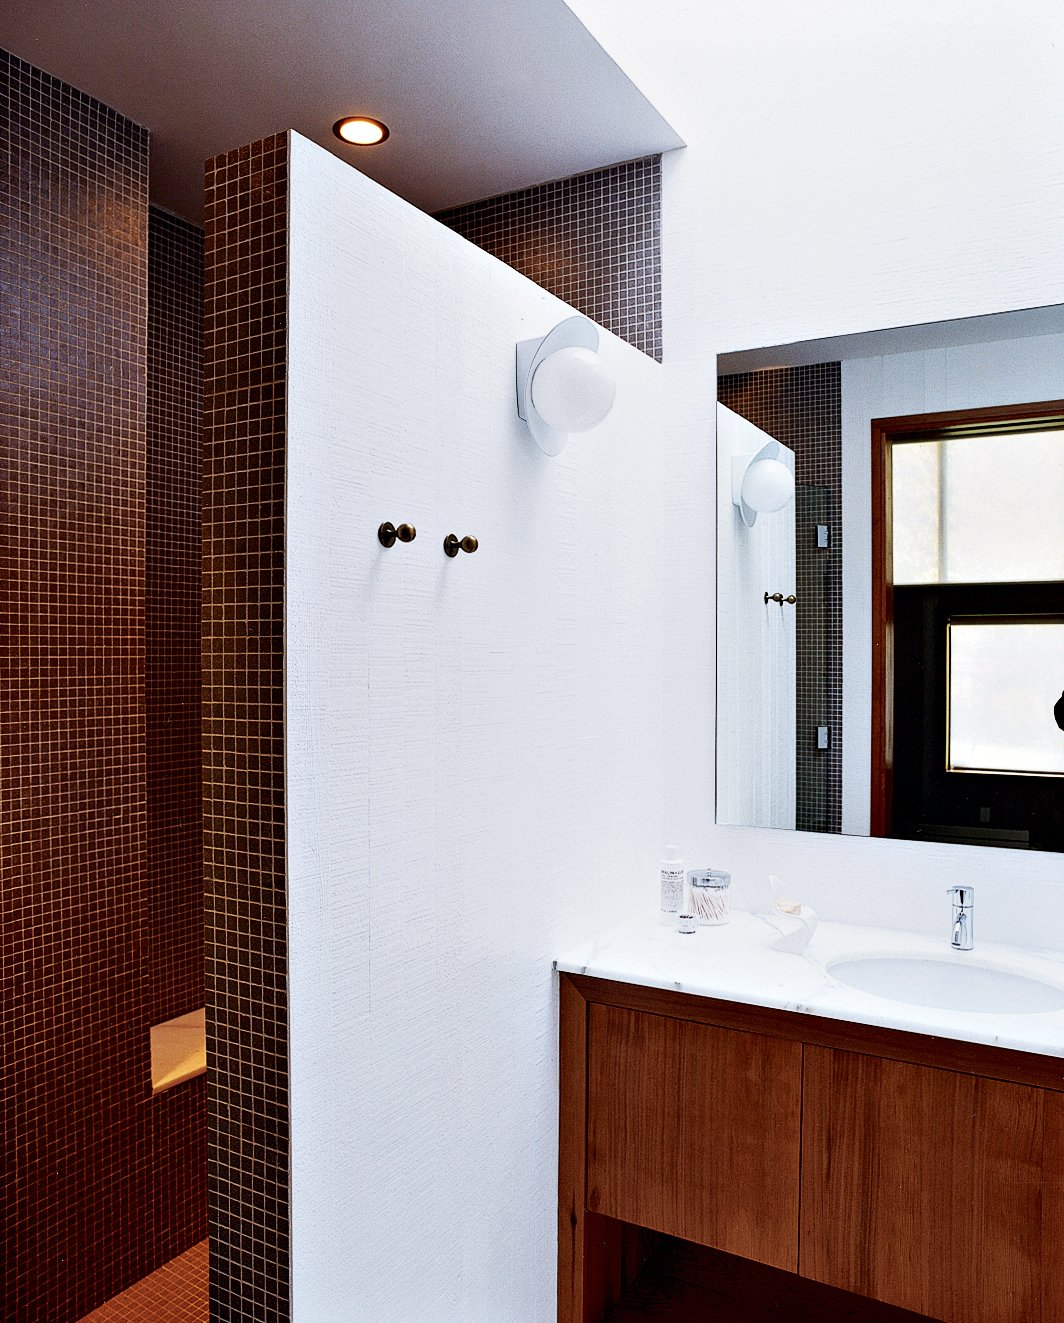 Bath Room, Marble Counter, Enclosed Shower, Full Shower, Ceiling Lighting, and Ceramic Tile Wall A double-size shower, clad floor-to-ceiling in tiny earth-toned tiles, was built after relocating the water heater and claiming its space. A chic yet discreet toilet is wall-hung and the tank concealed, greatly ameliorating the somewhat claustrophobic feel of the original bathroom.  Photo 5 of 6 in The Pace of Portland